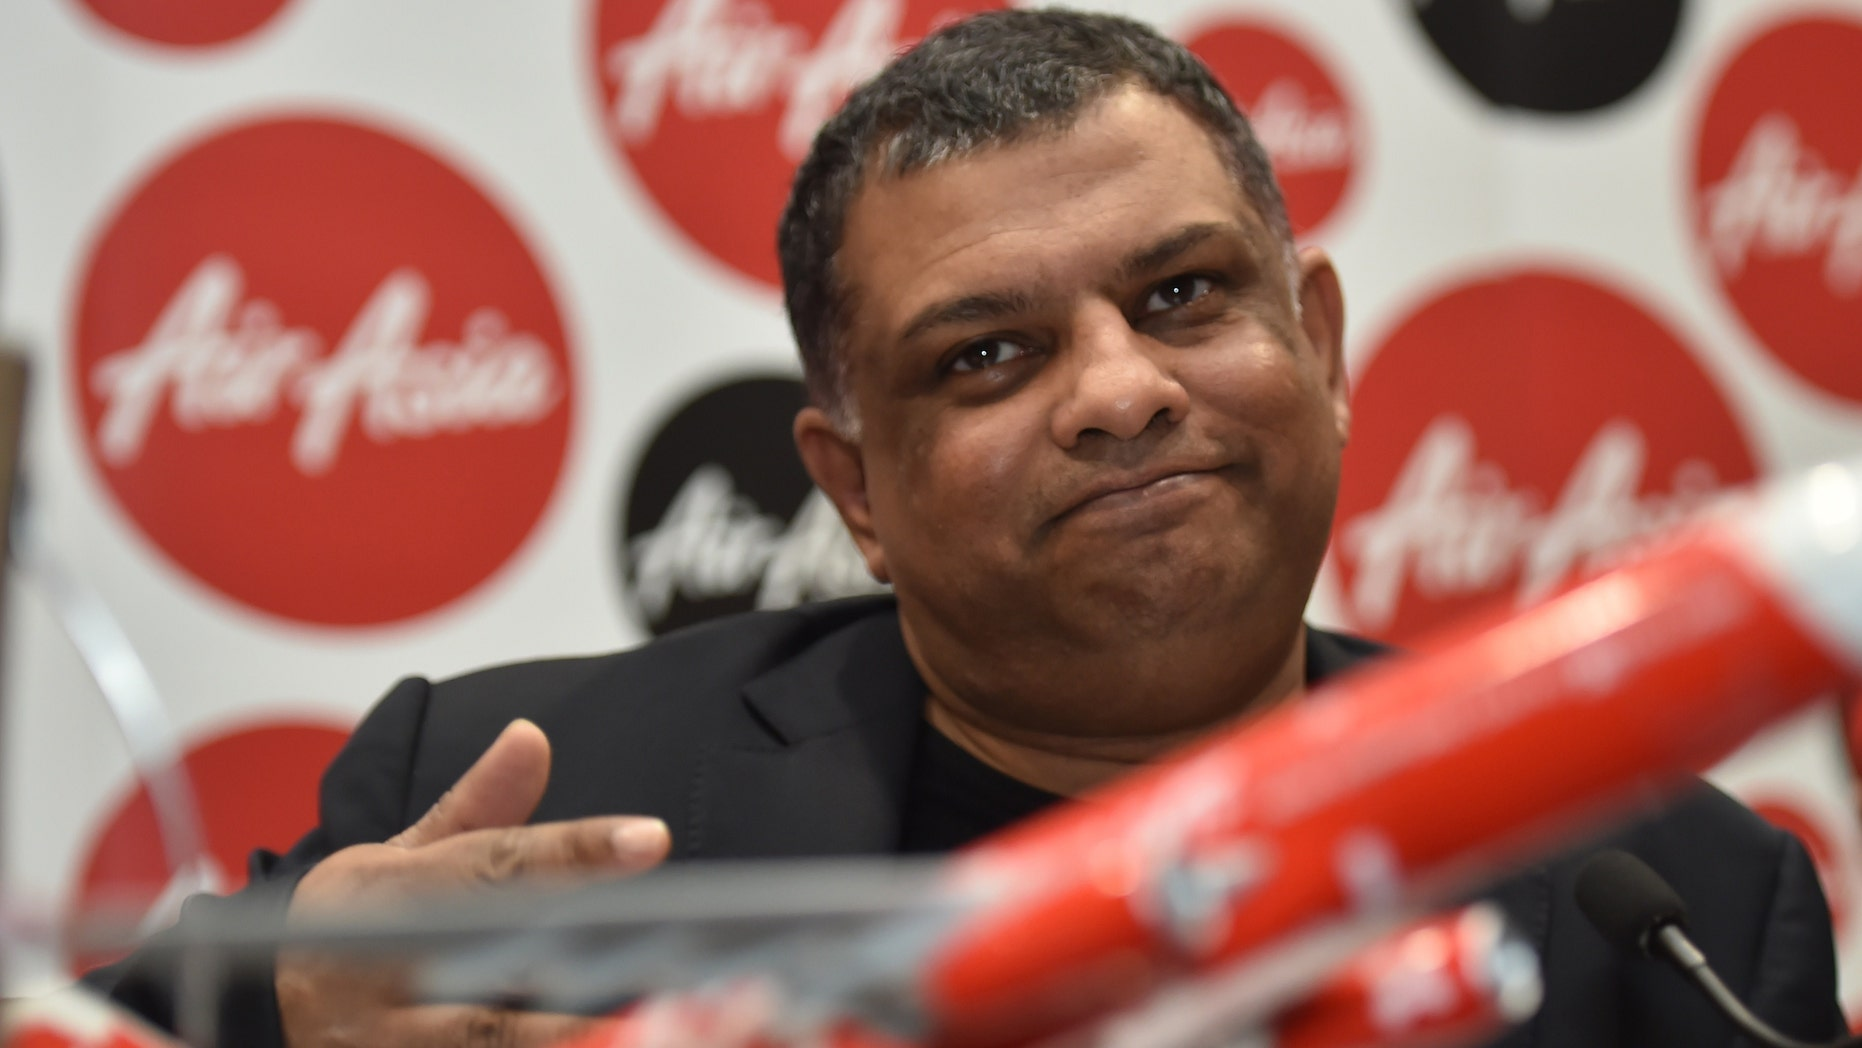 """In an interview on Larry King's Ora series """"Larry King Now,"""" Tony Fernandes, the CEO of AirAsia Group, told King that the company is planning to open its own fast-food restaurant."""